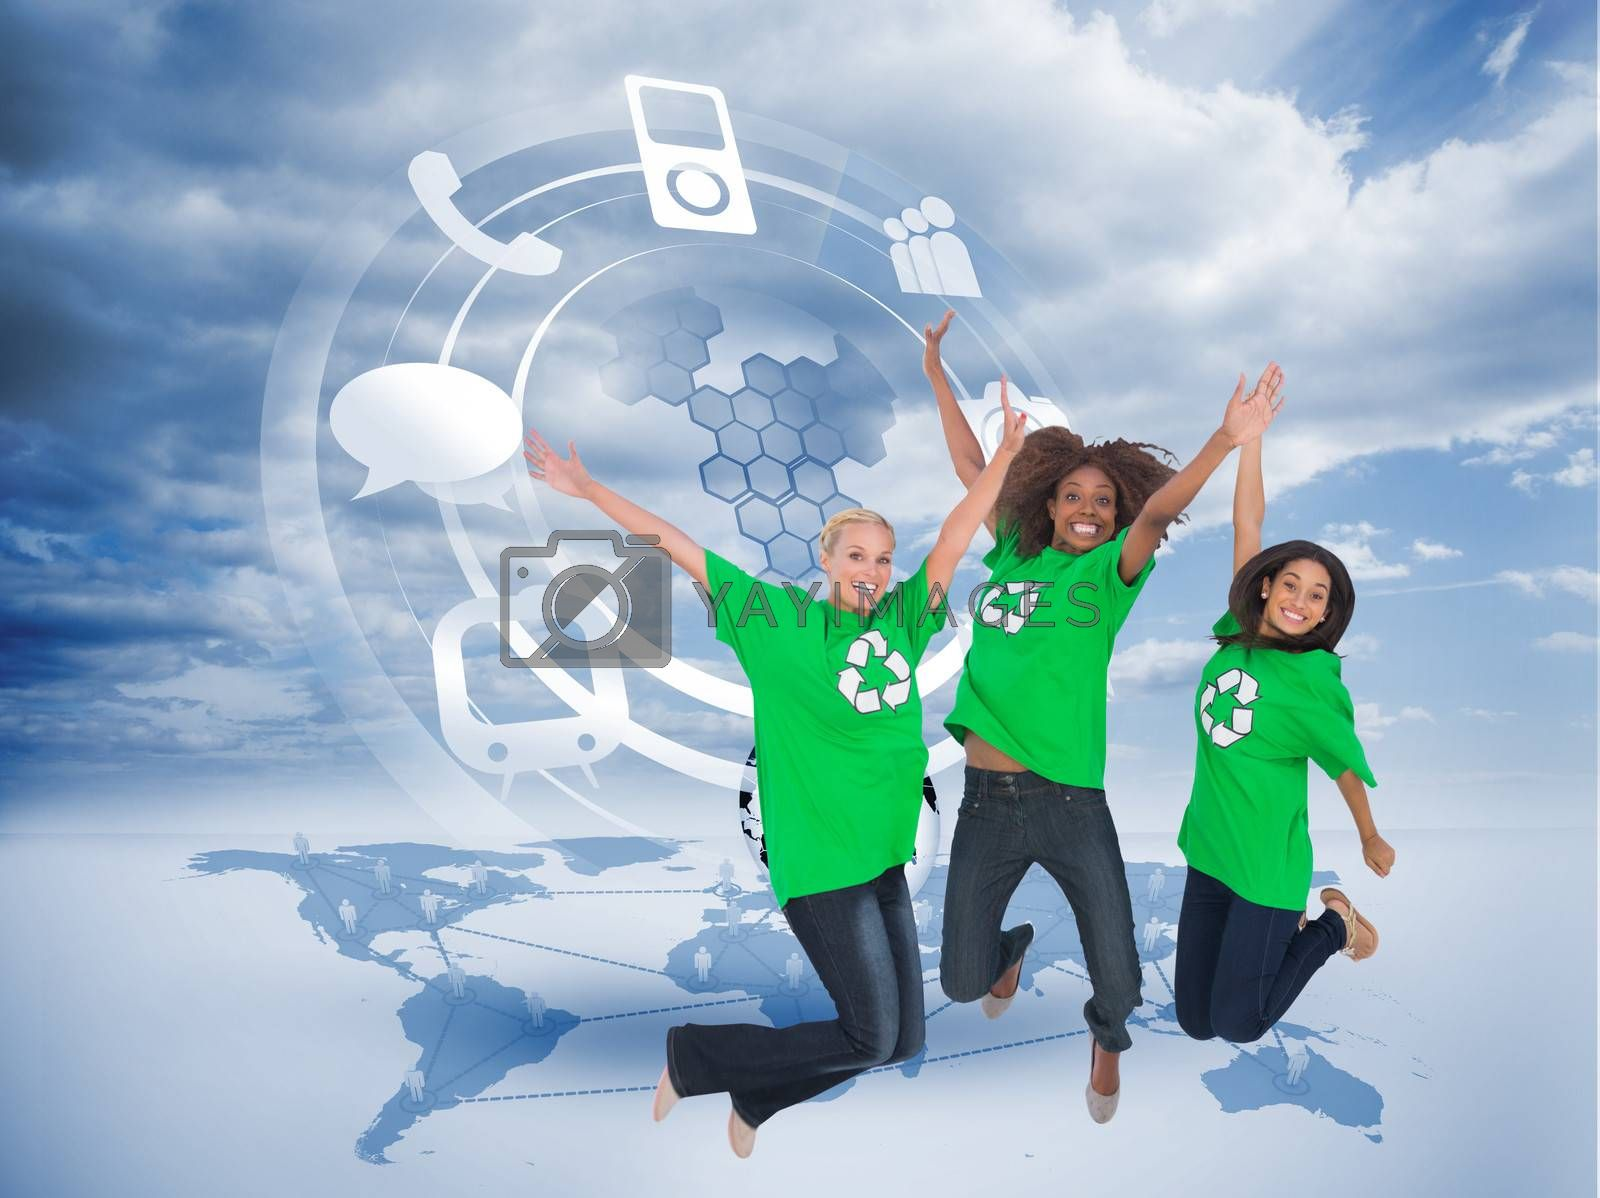 Composite image of three enviromental activists jumping and smiling